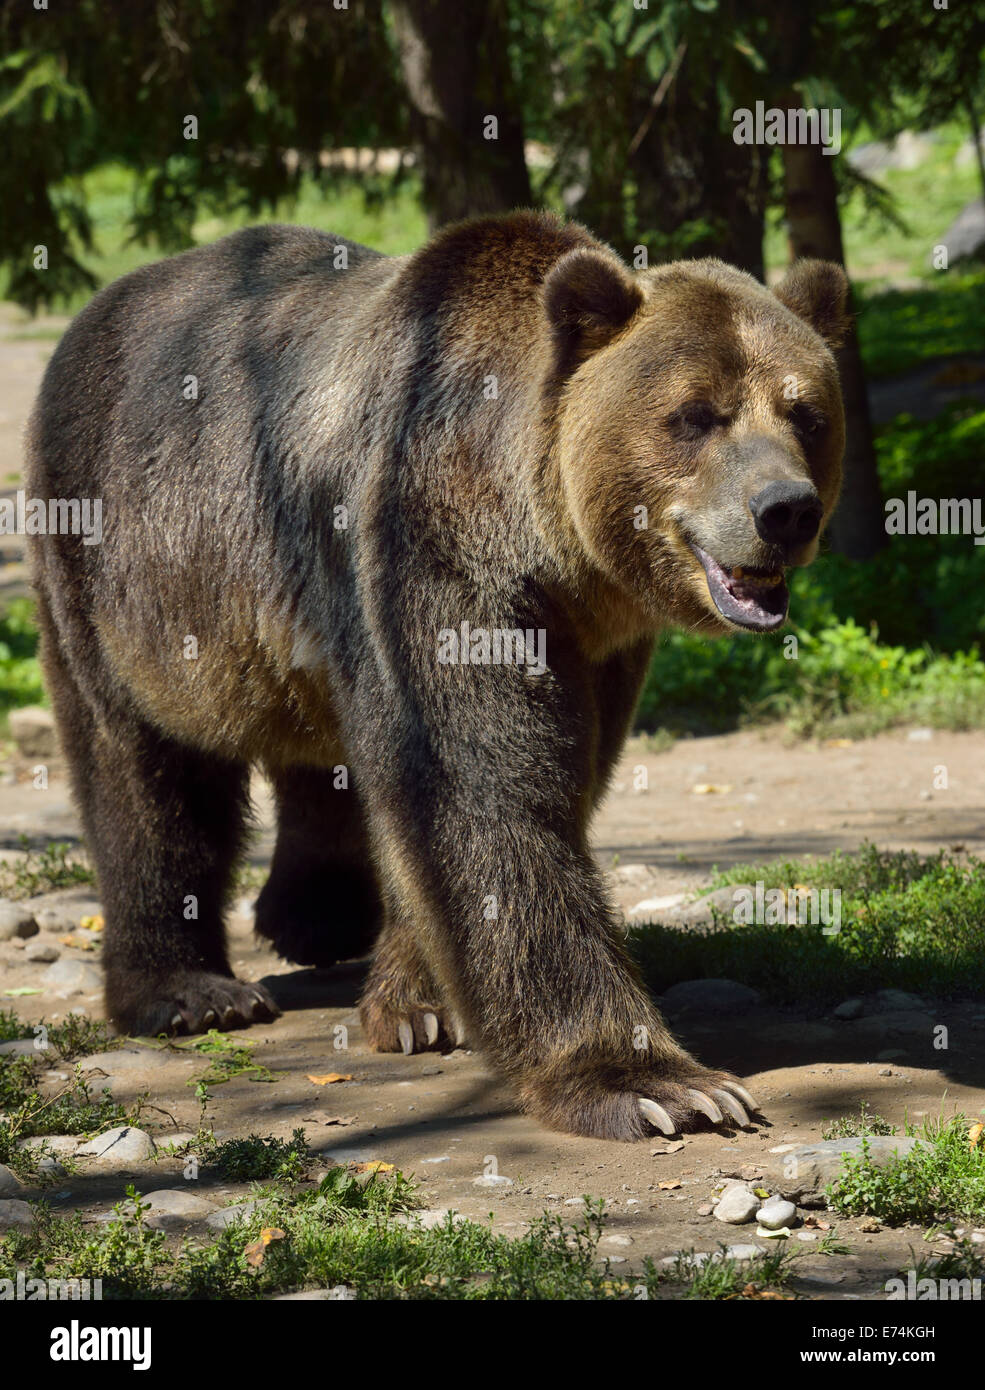 Mainland Grizzly bear Ursus arctos horribilis subspecies of brown bear walking on path Toronto Zoo - Stock Image